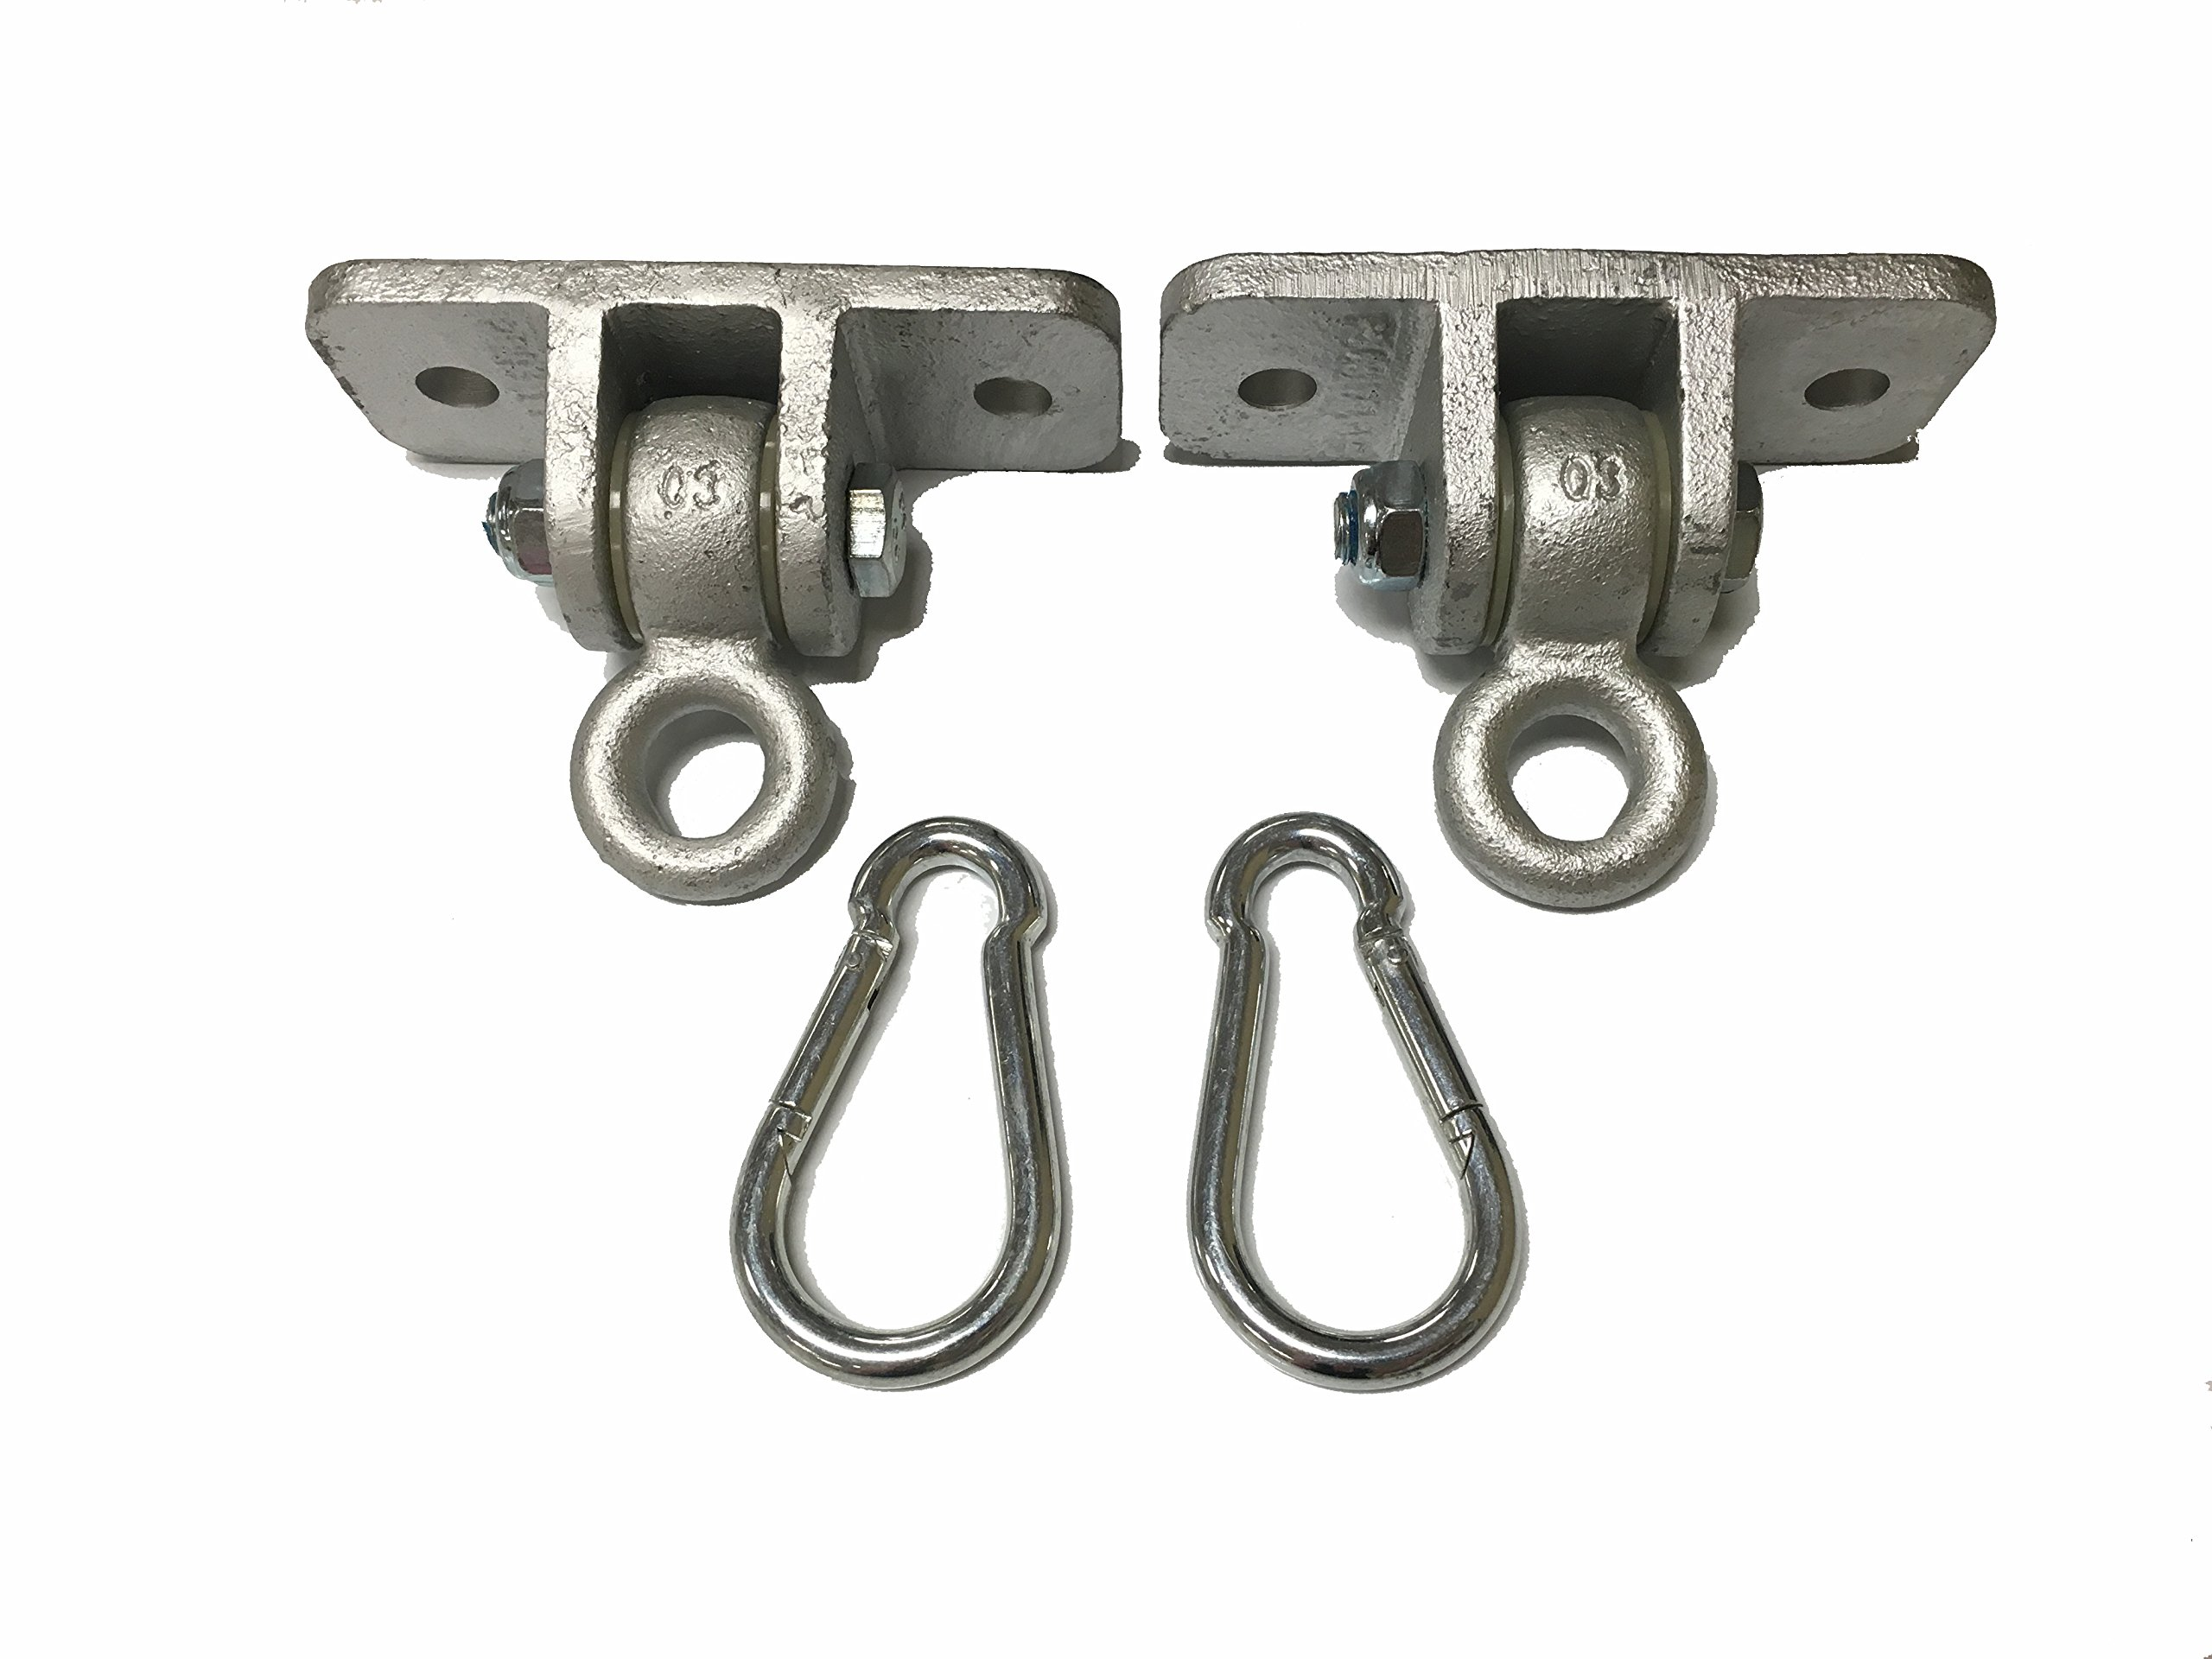 Set of 2 Commercial Swing Hangers Galvanized to Attach to Wooden Beams - Now Includes Bonus Hanging Snap Hooks (Carabiners)